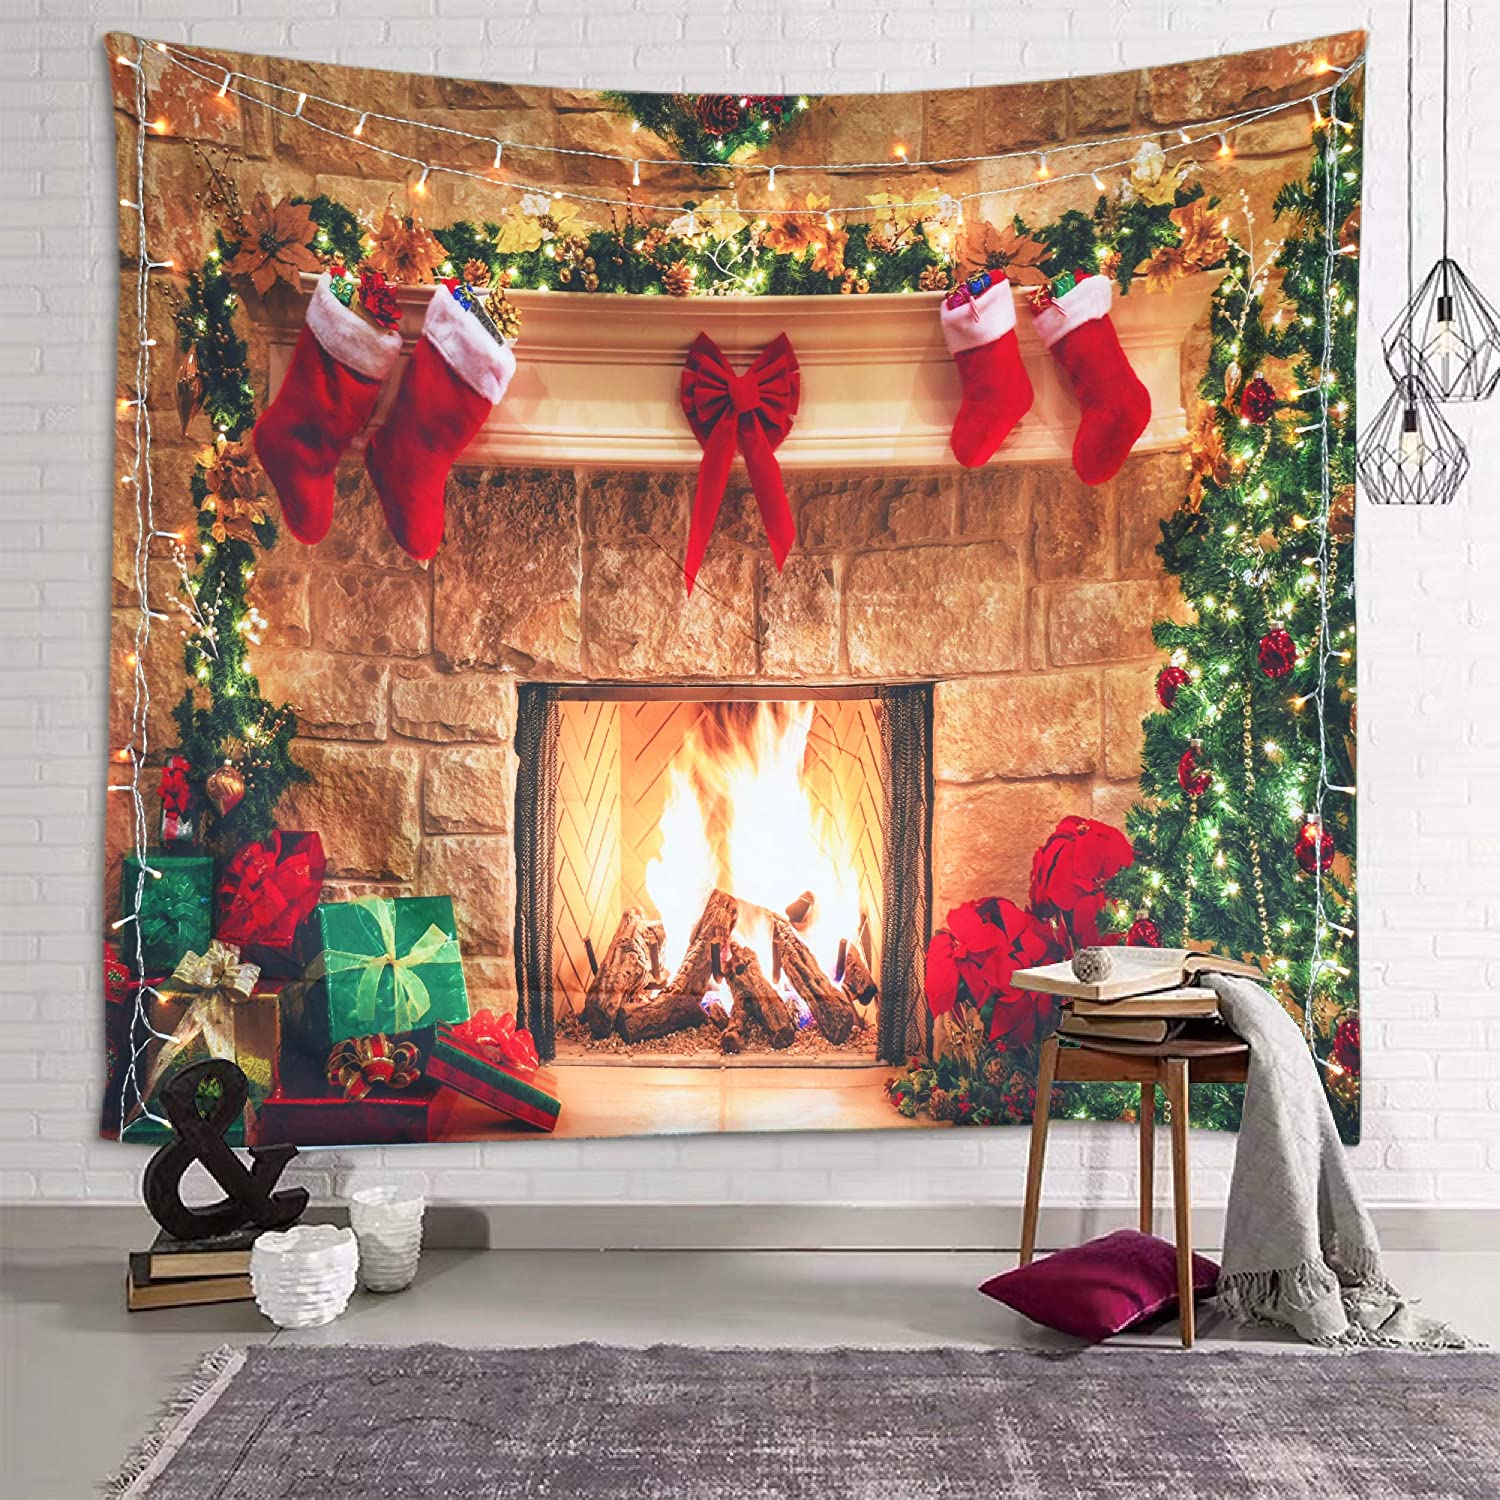 Sevendec Christmas Tapestry Wall Hanging Fireplace Xmas Tree Stockings Gifts Wall Tapestry for Party Livingroom Bedroom Dorm Home Decor W78 x L59